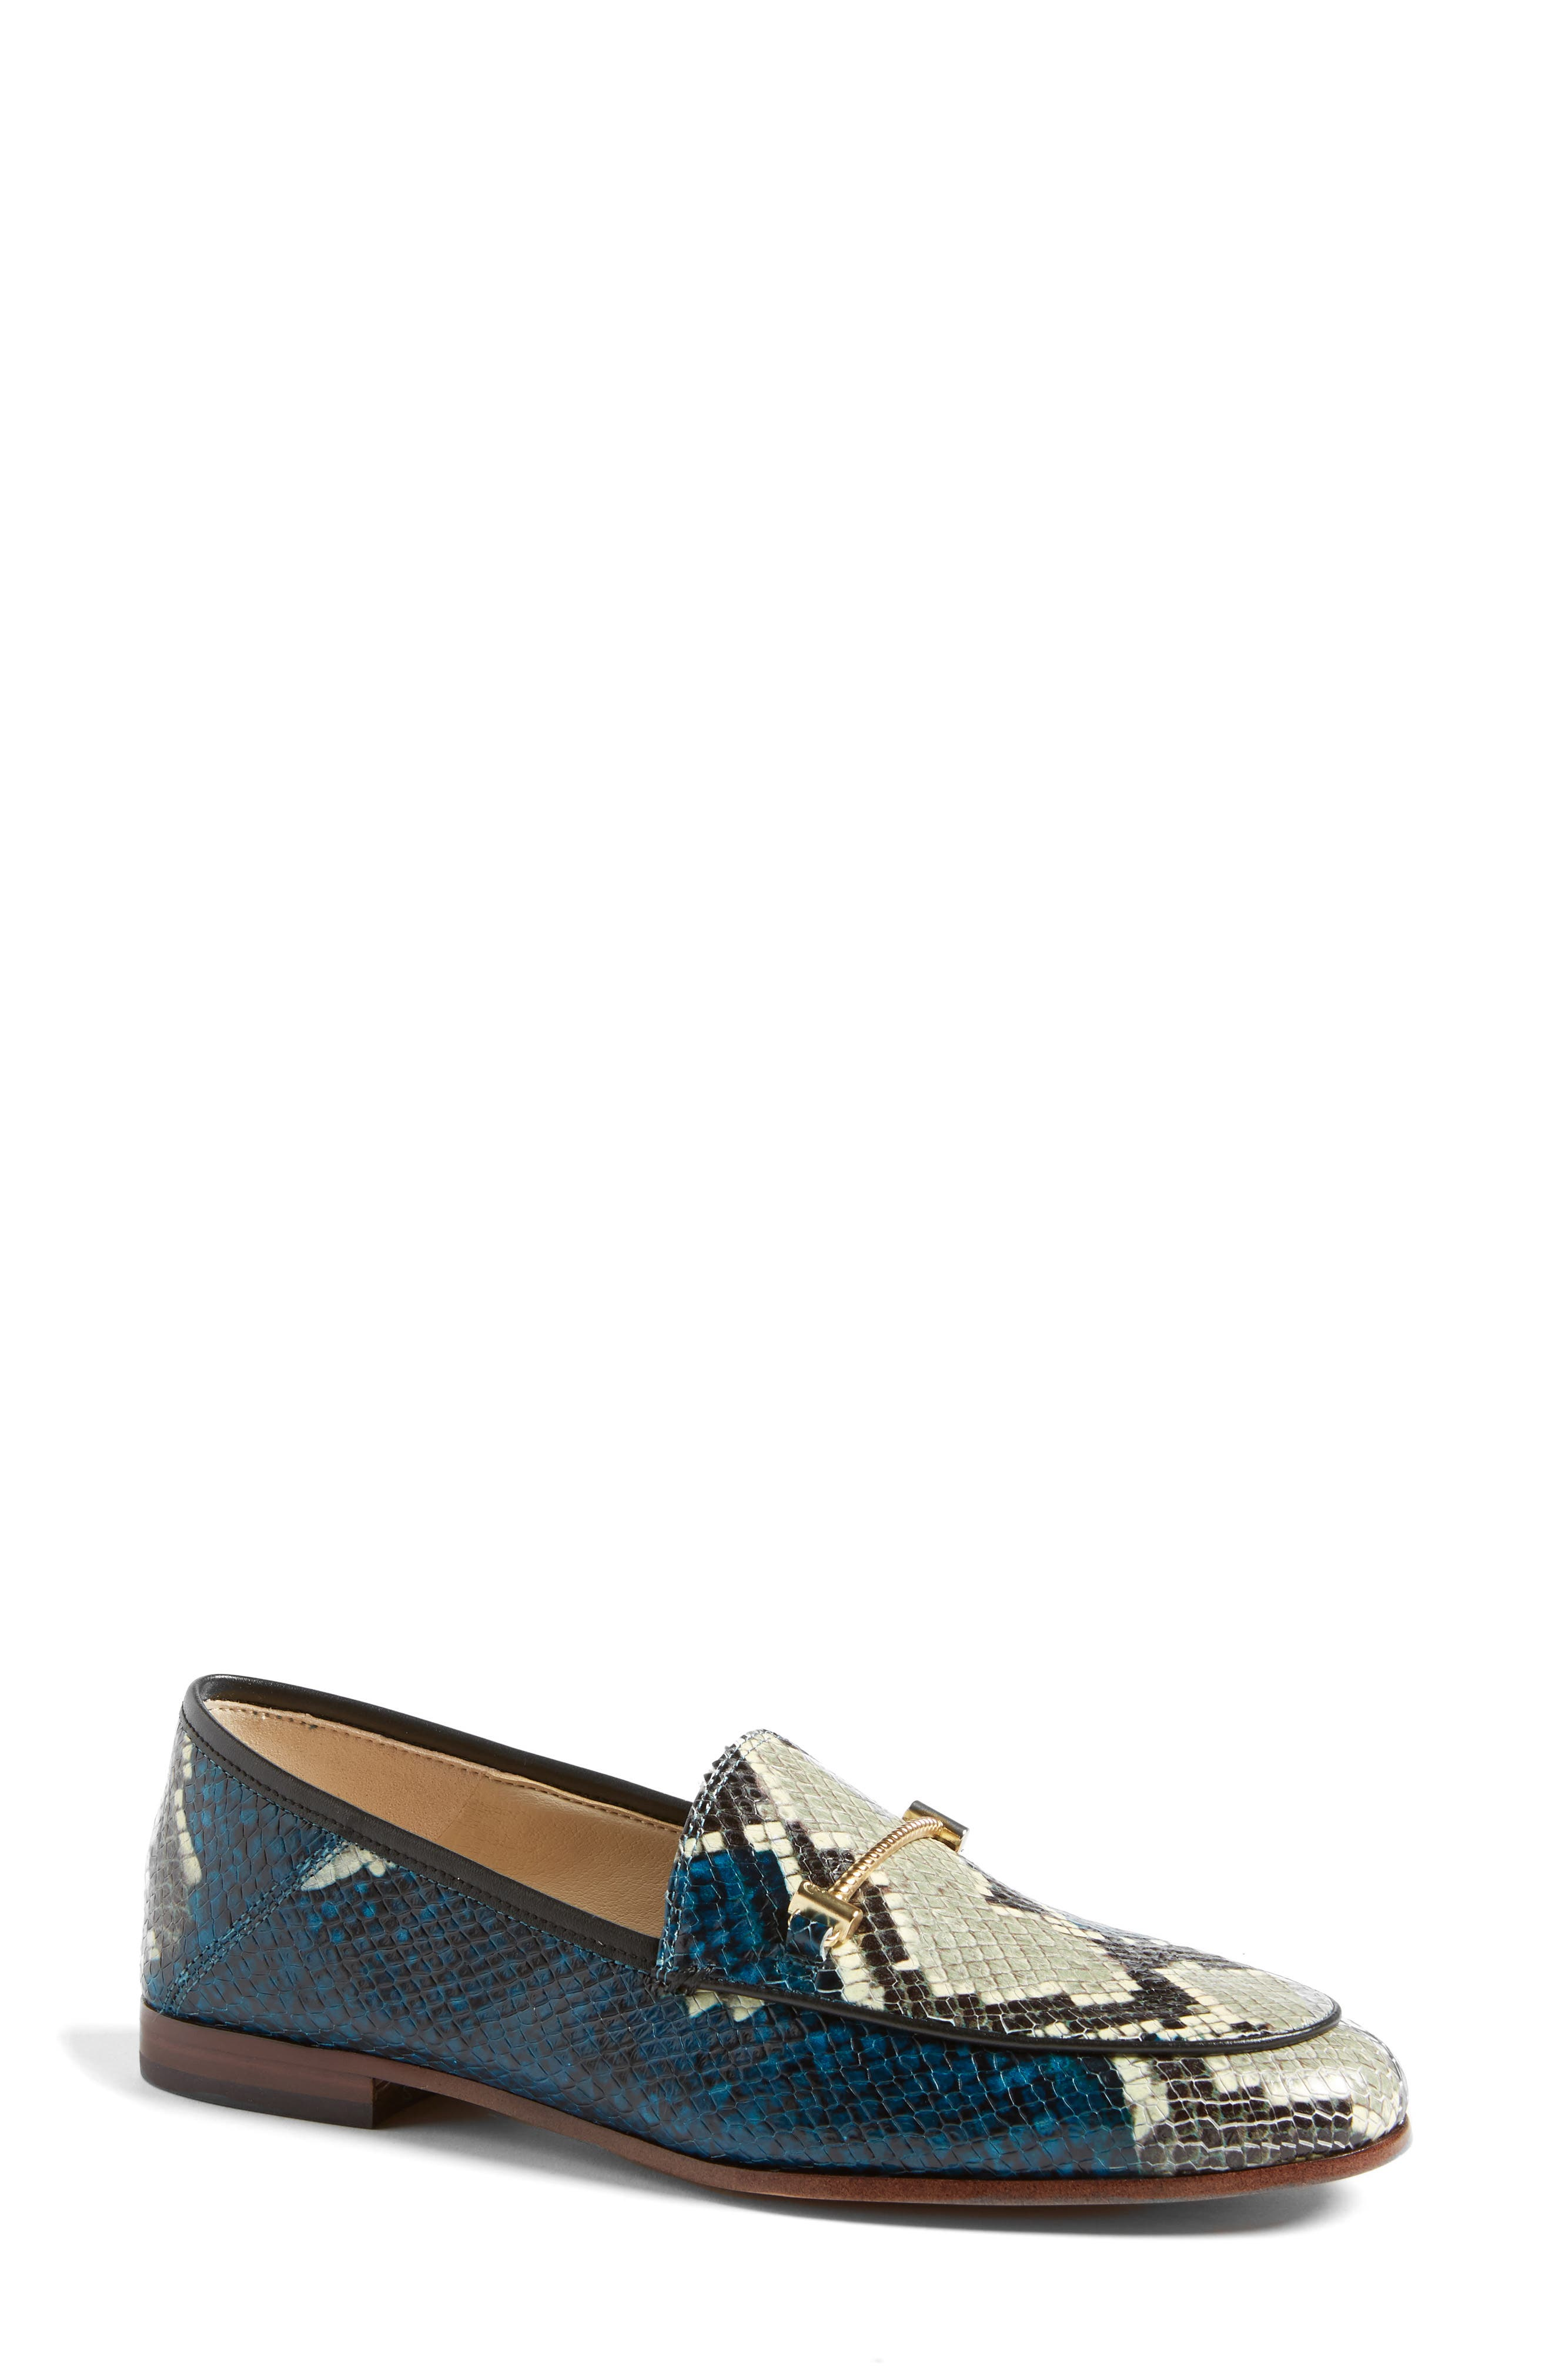 Lior Loafer,                             Main thumbnail 1, color,                             Peacock Blue Snake Print